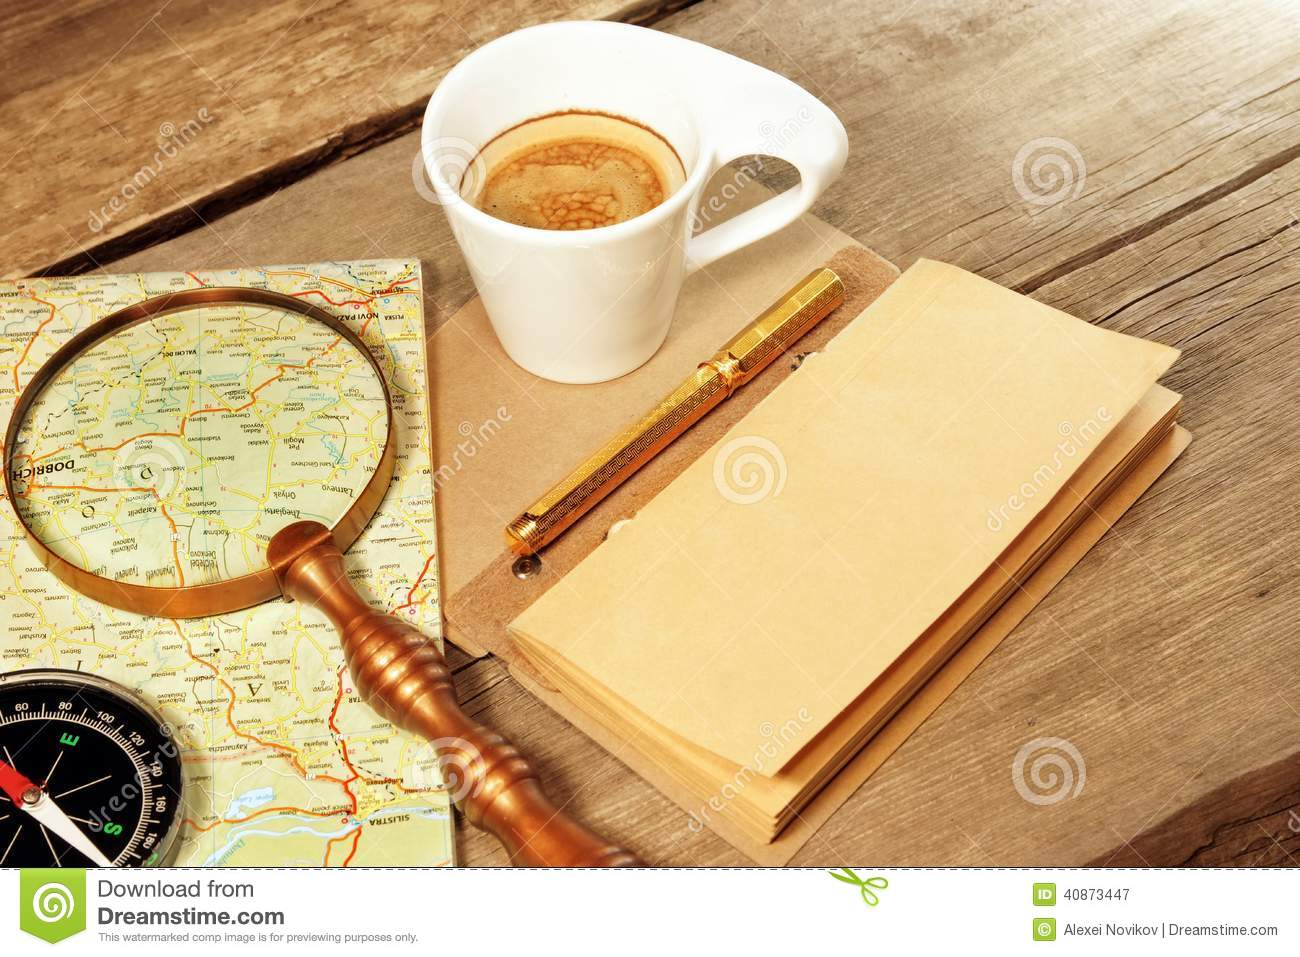 Coffee cup frames - Compass Magnifier Vintage Notepad Gold Pen Coffee Cup Wood Table Royalty Free Stock Photography